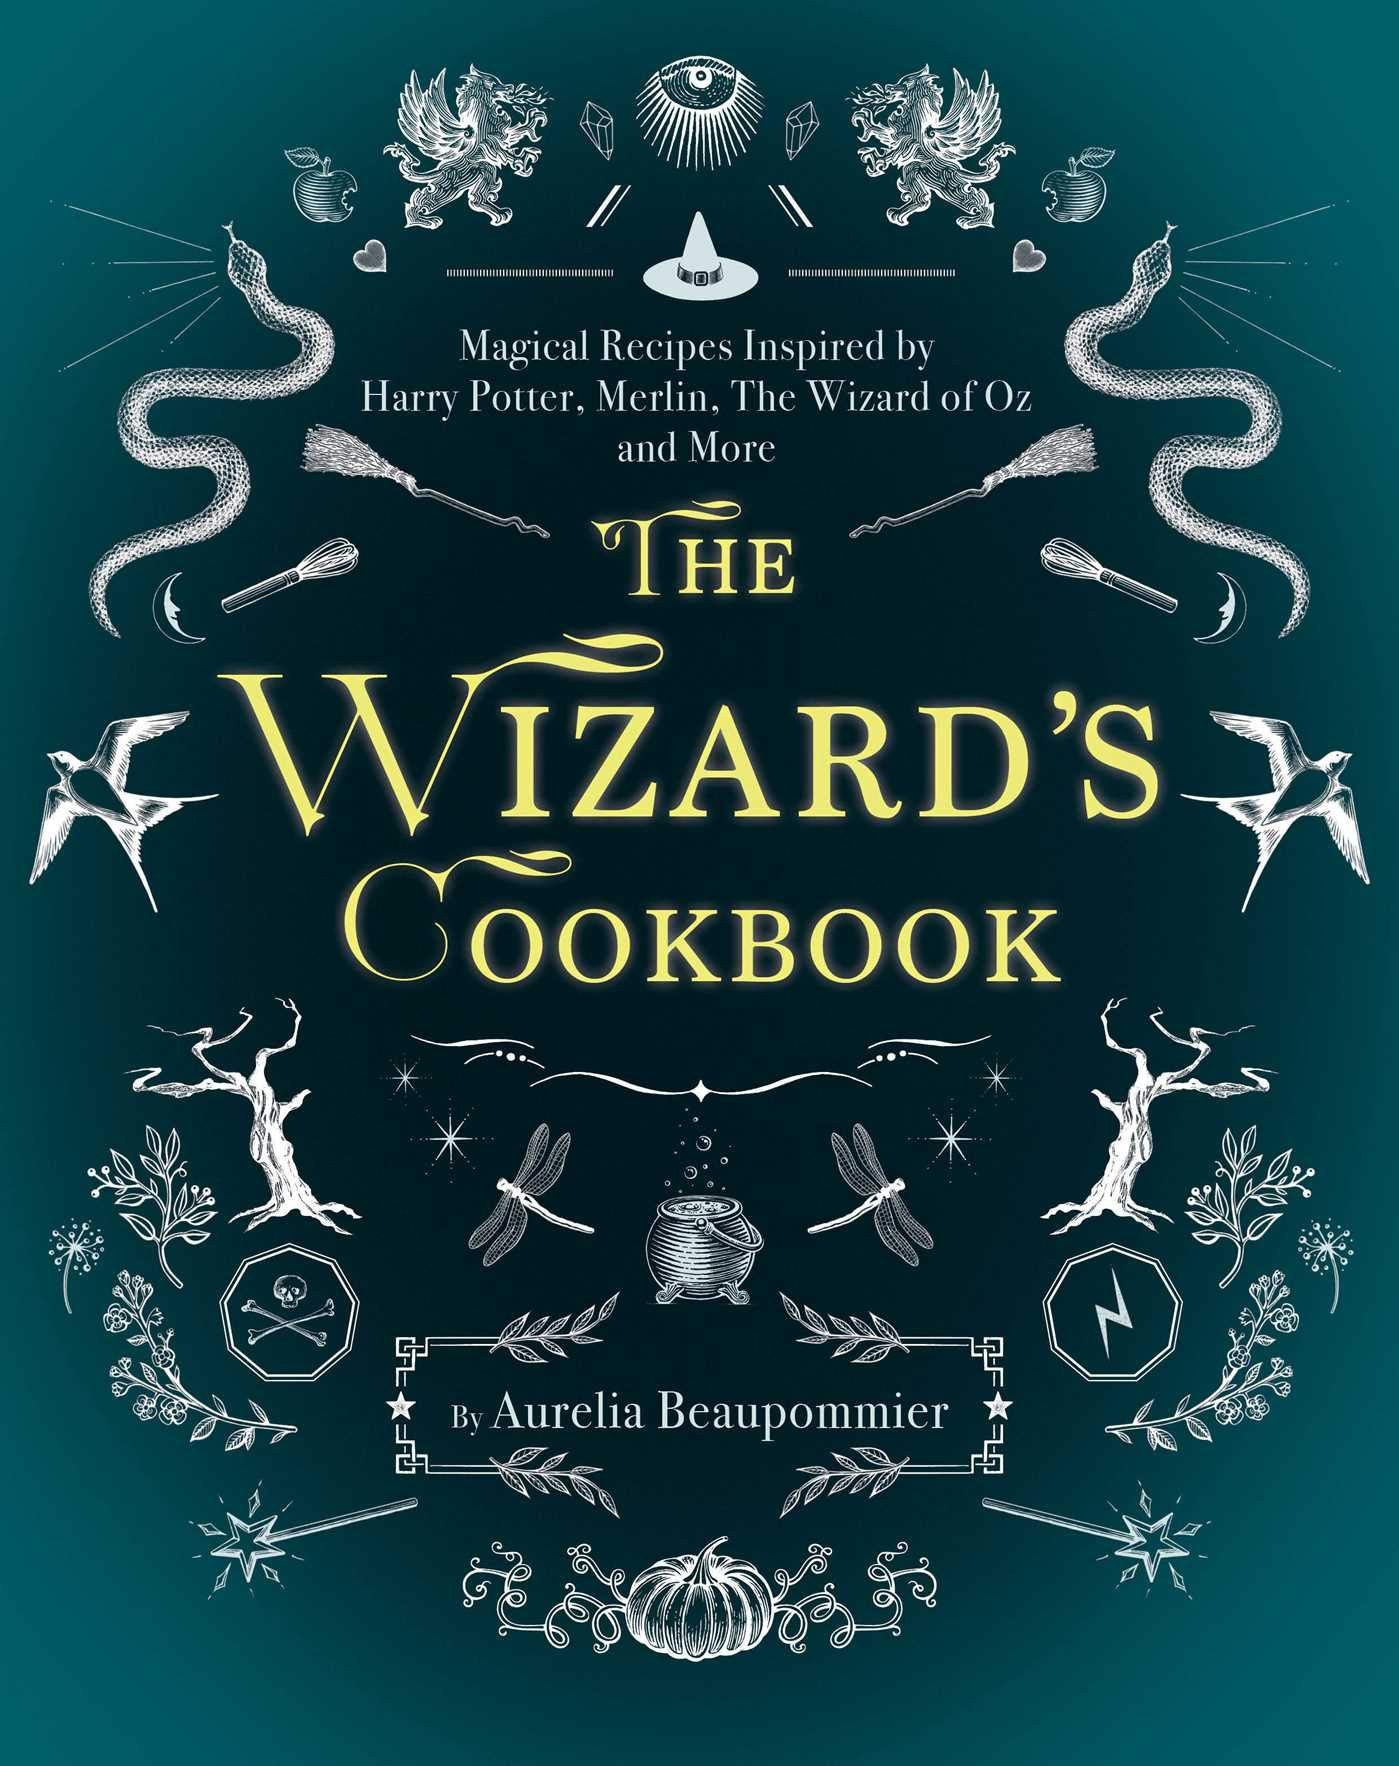 Cover of The Wizard's Cookbook, by Aurelia Beaupommier.  Subtitle: Magical Recipes Inspired by Harry Potter, Merlin, The Wizard of Oz, and More.  The background is a dark teal and the title is a bright yellow surrounded by ghostly white images of bare trees, birds, snakes, dragonflies, broomsticks, gryphons, a pumpkin, a witch's hat, a cauldron, and a creepy eye.